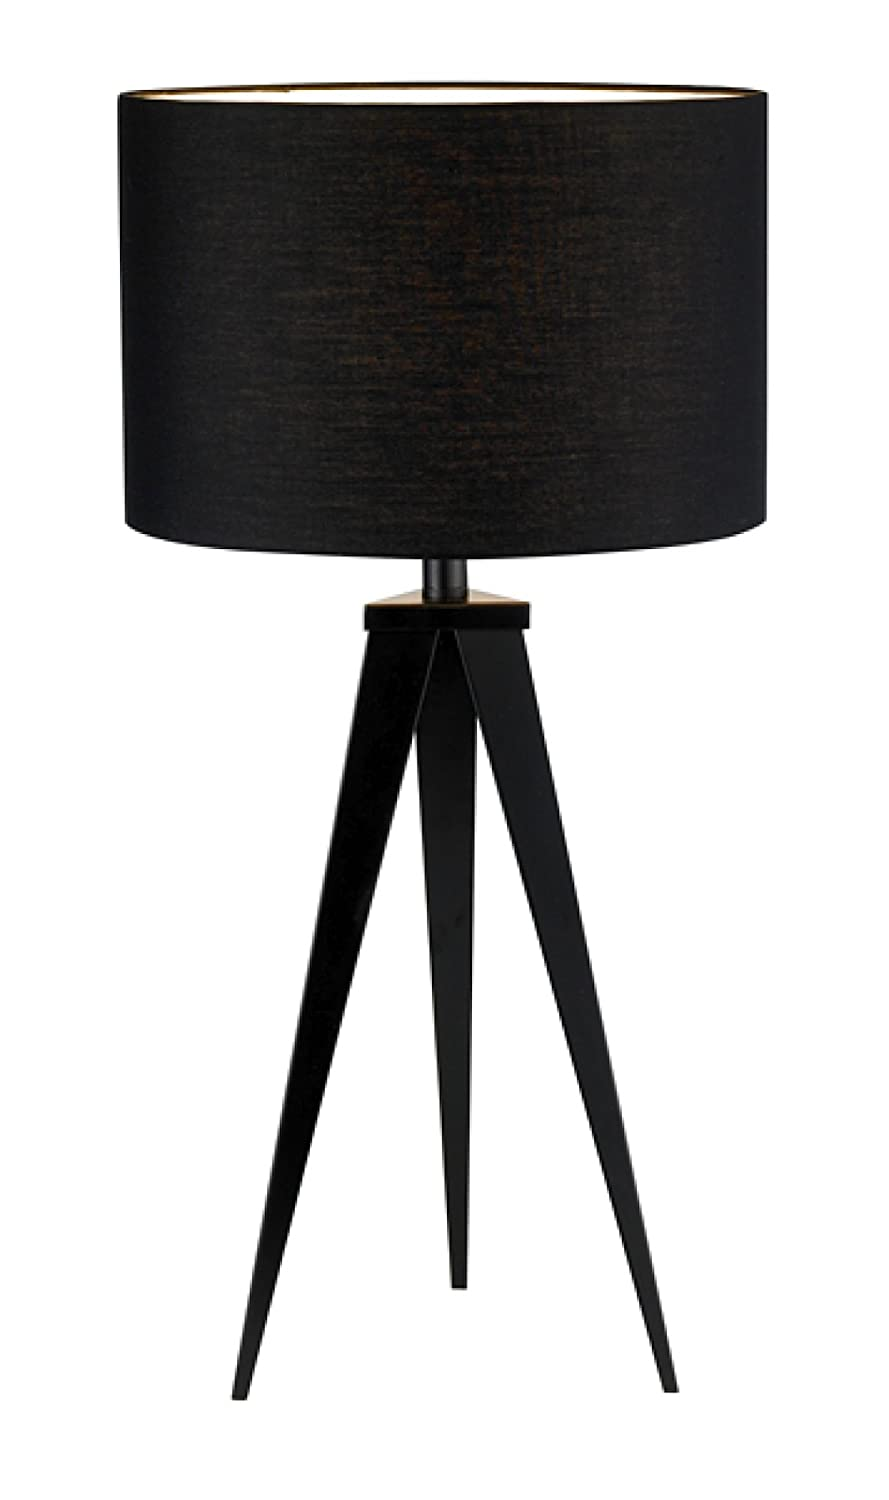 Adesso 6423 01 director table lamp black floor lamps amazon canada geotapseo Image collections